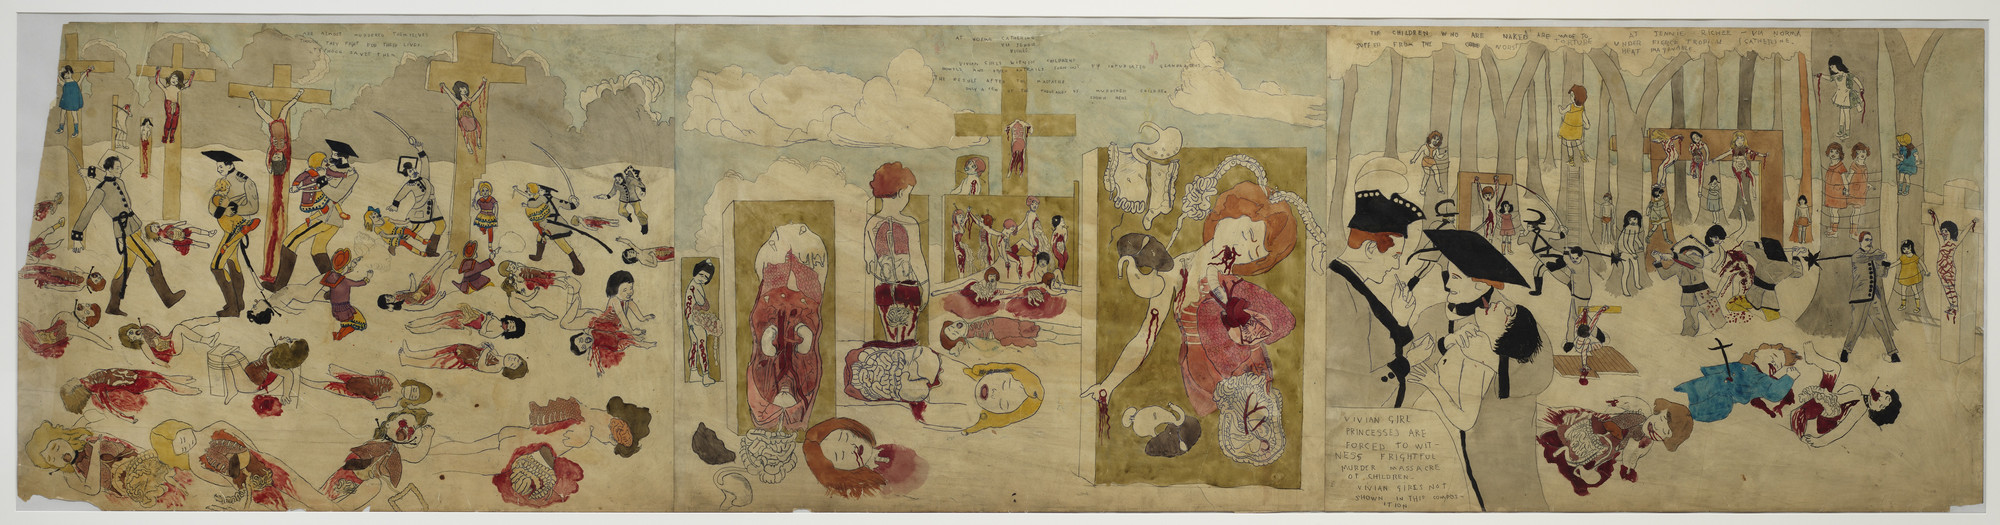 Henry Darger. a) Are almost murdered themselves though they fight for their lives typhoon saves them... b) Vivian girls said Glandelinian tent,. (n.d.)